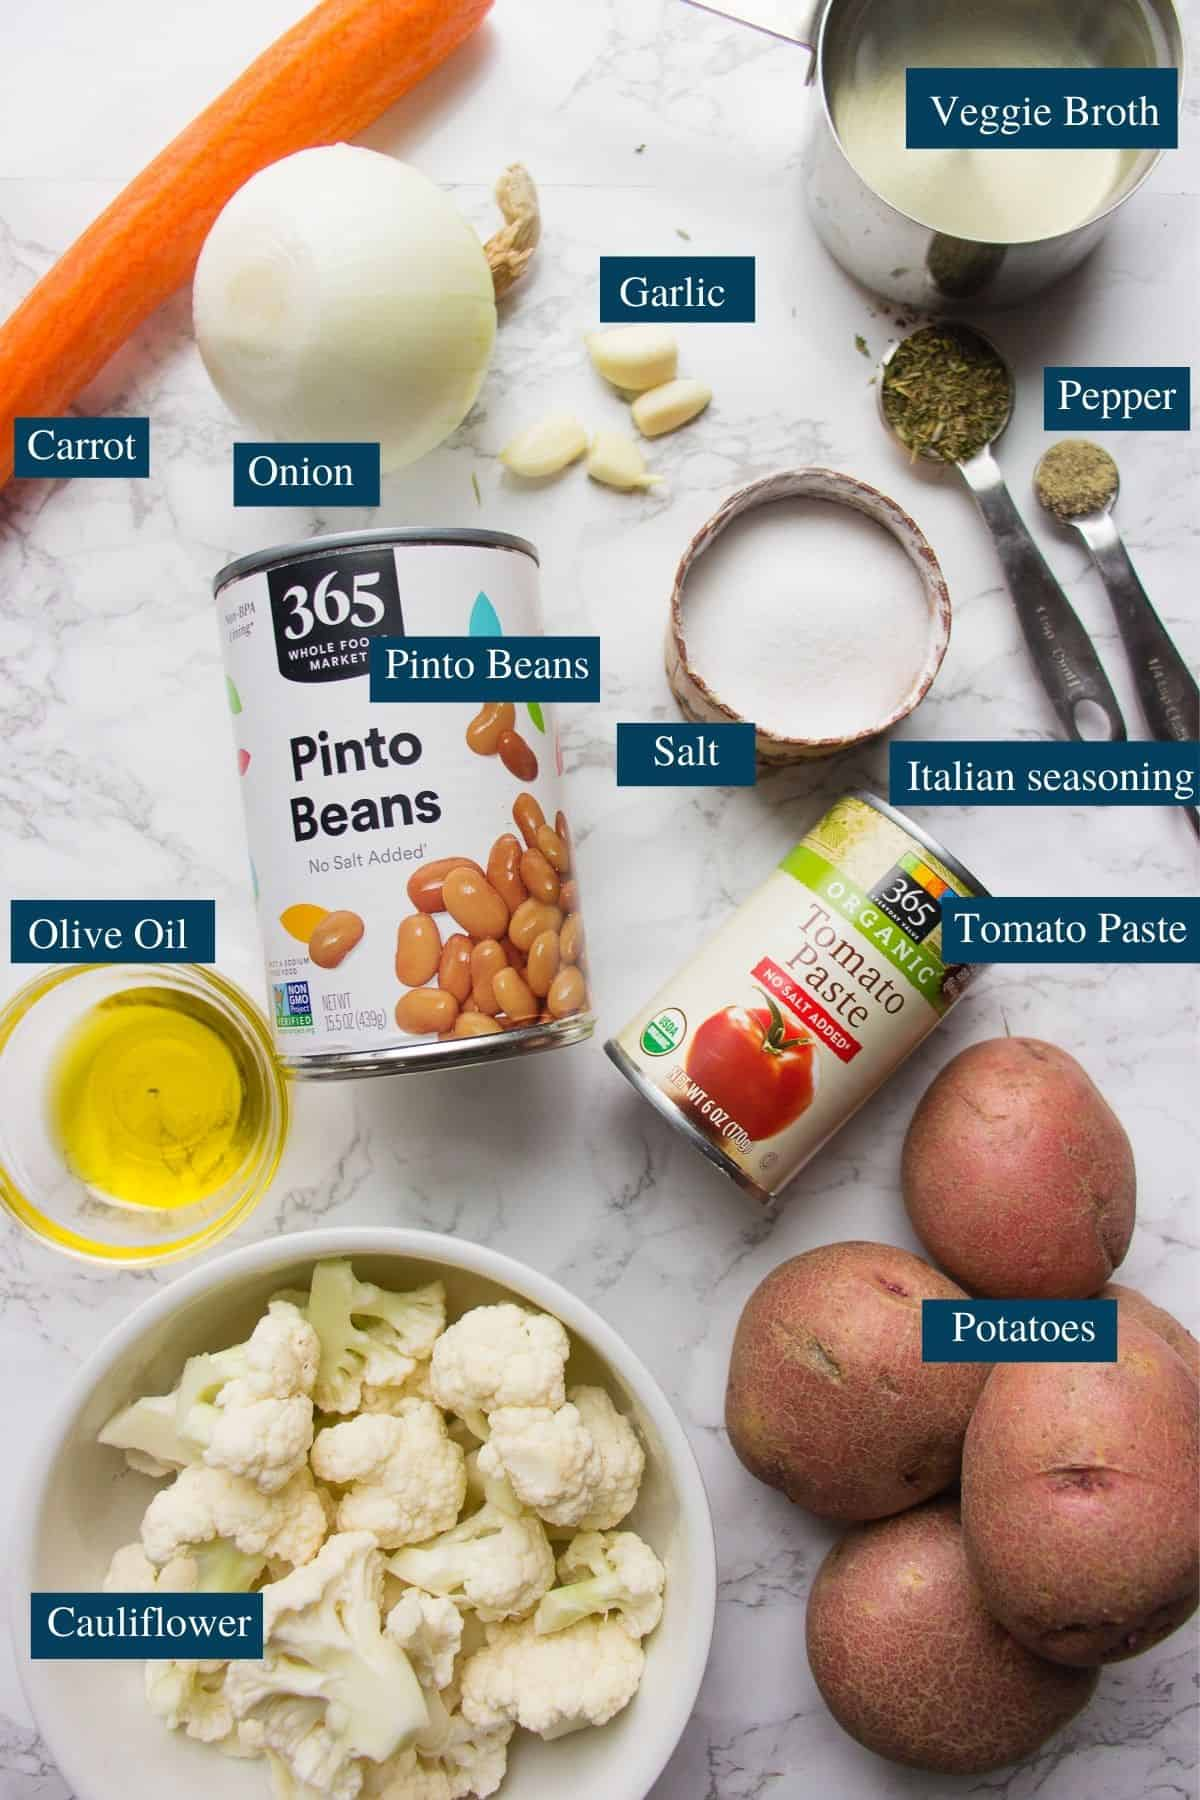 Ingredients for the Cauliflower bean soup